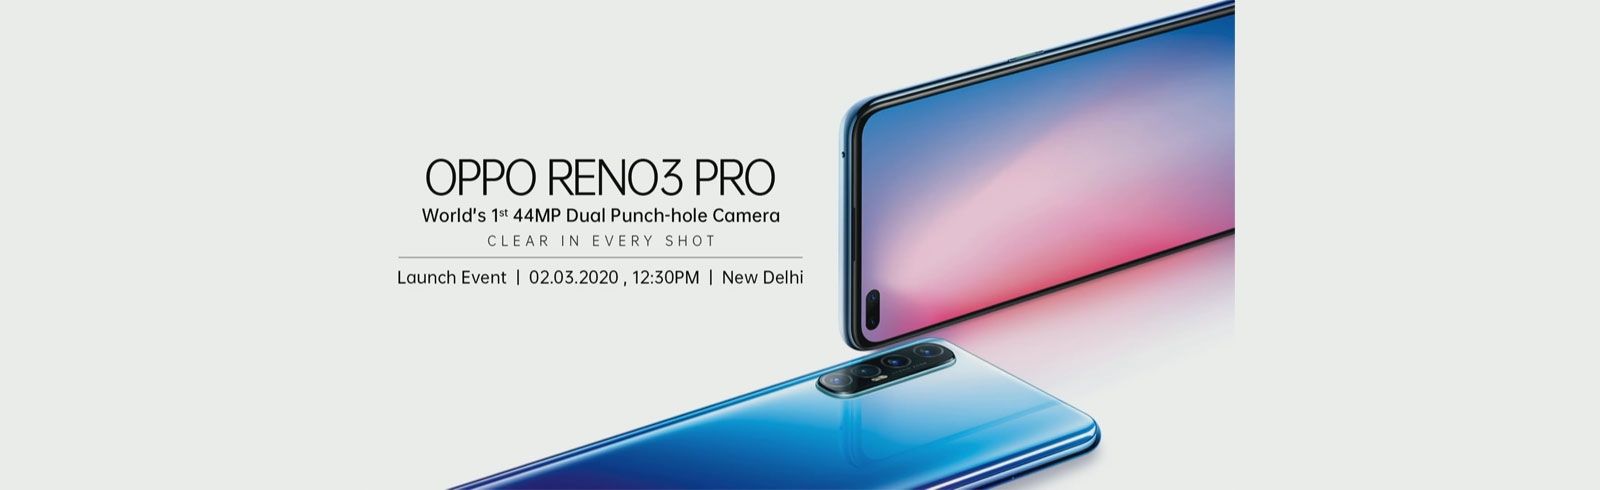 Oppo Reno3 Pro specifications and prices